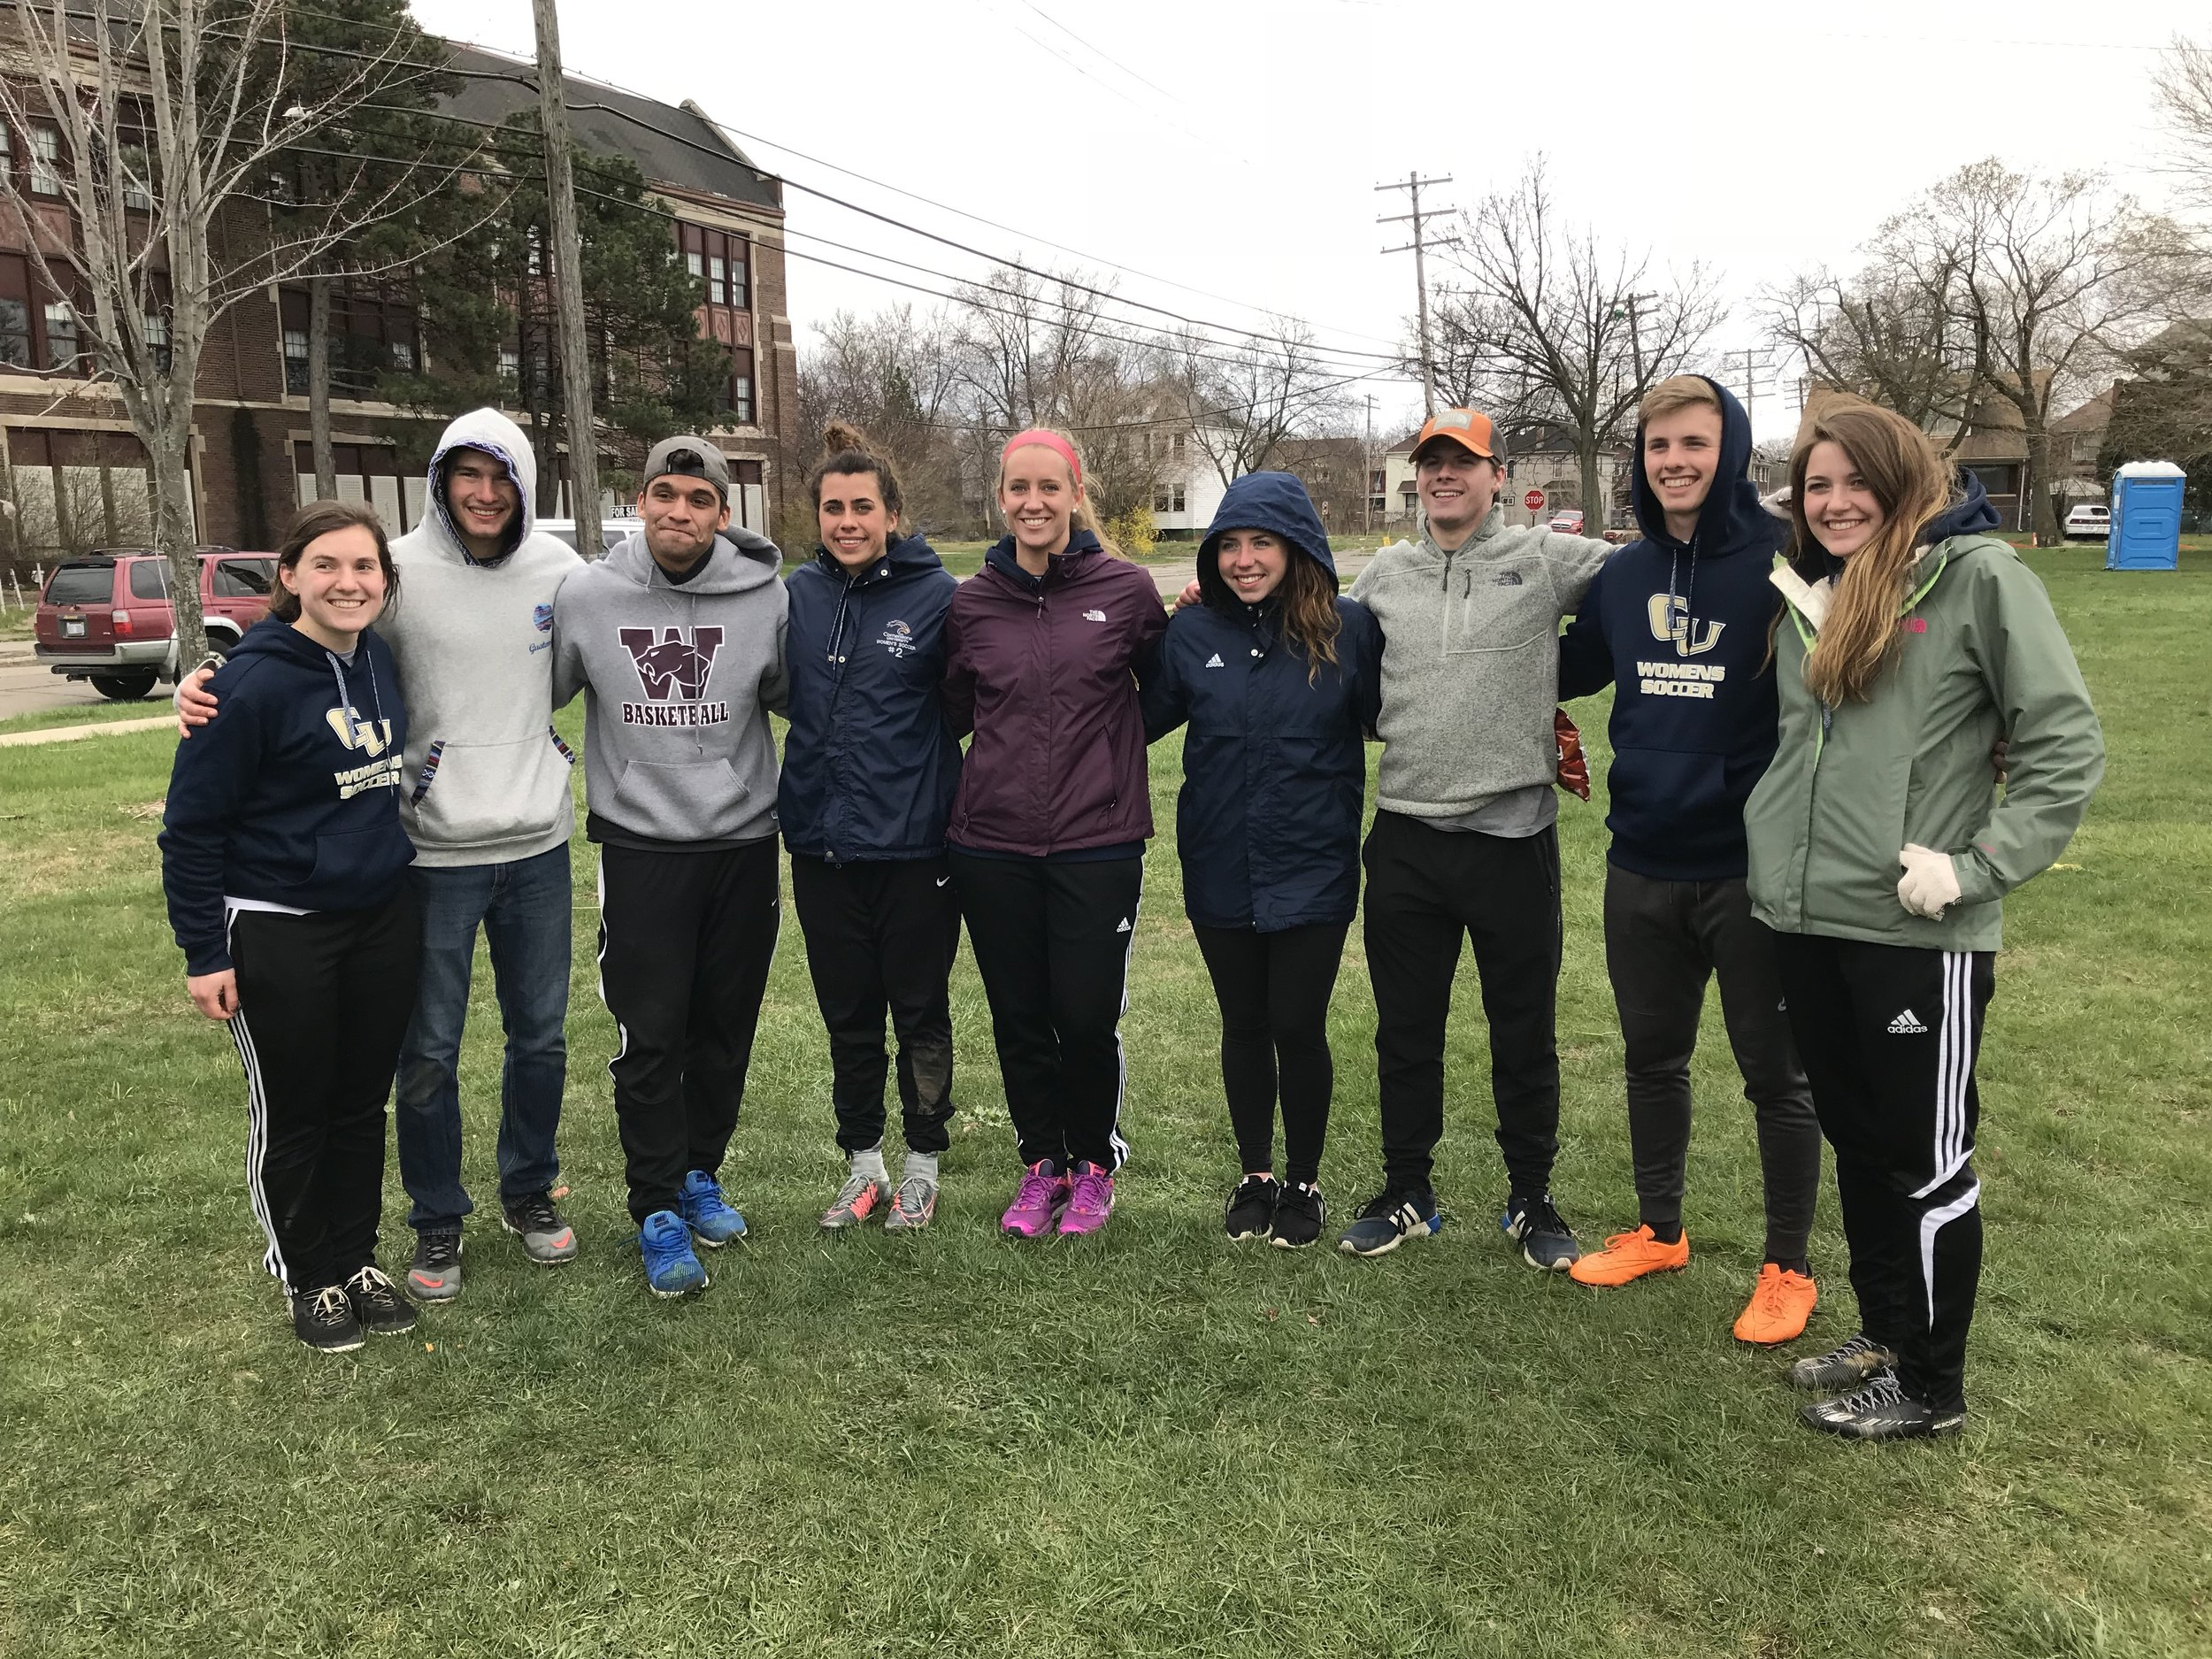 The FSI team comprised of Men's & Women's Cornerstone Soccer Players